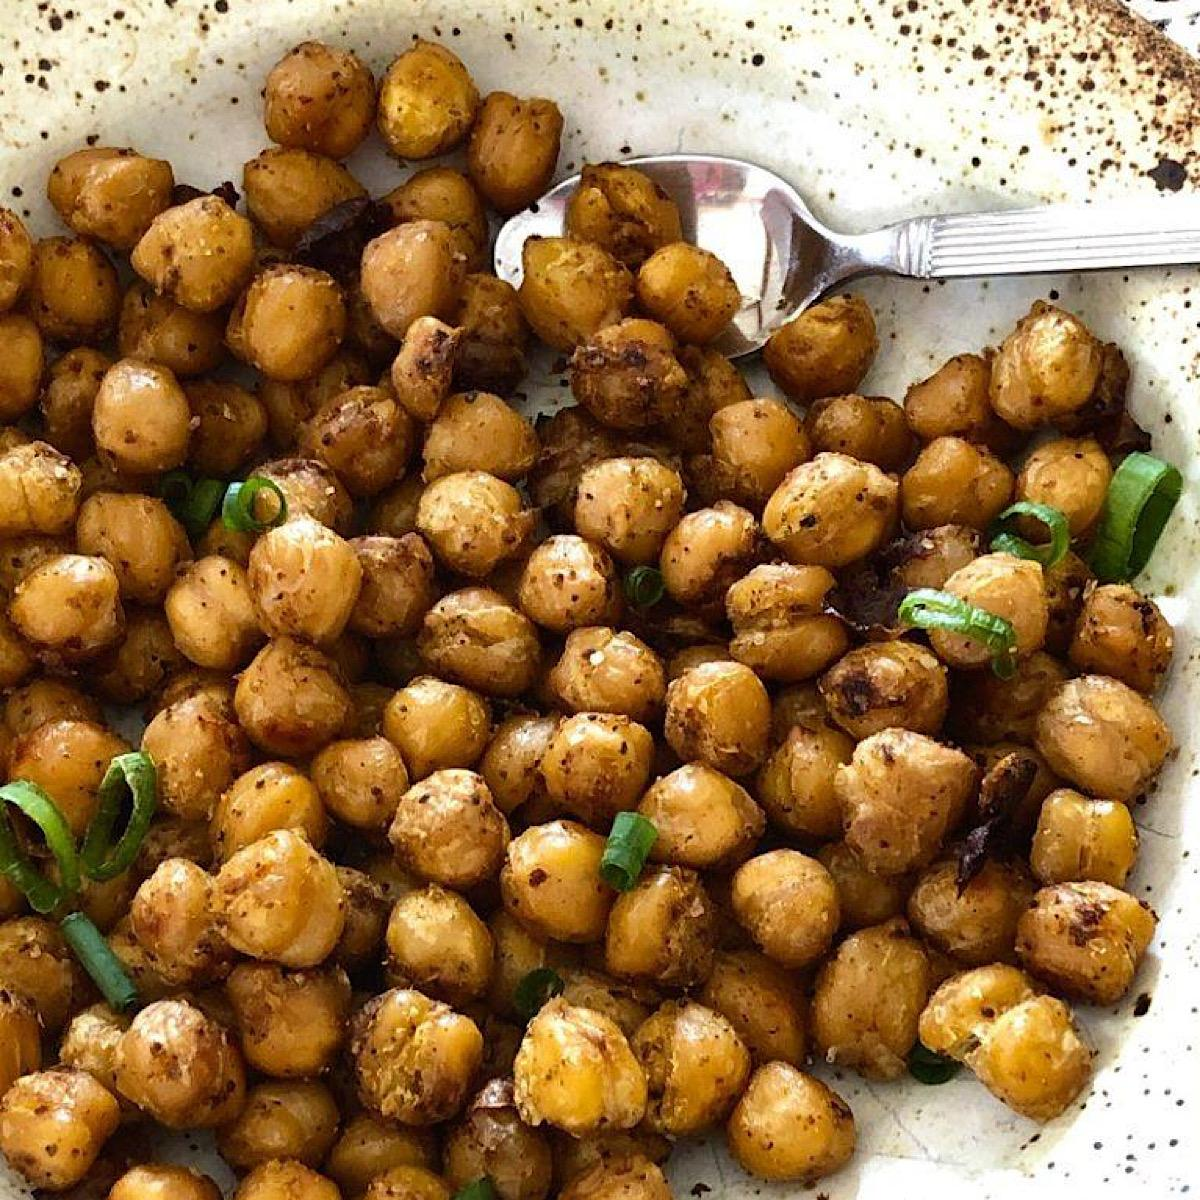 Roasted chickpeas with parmesan and herbs